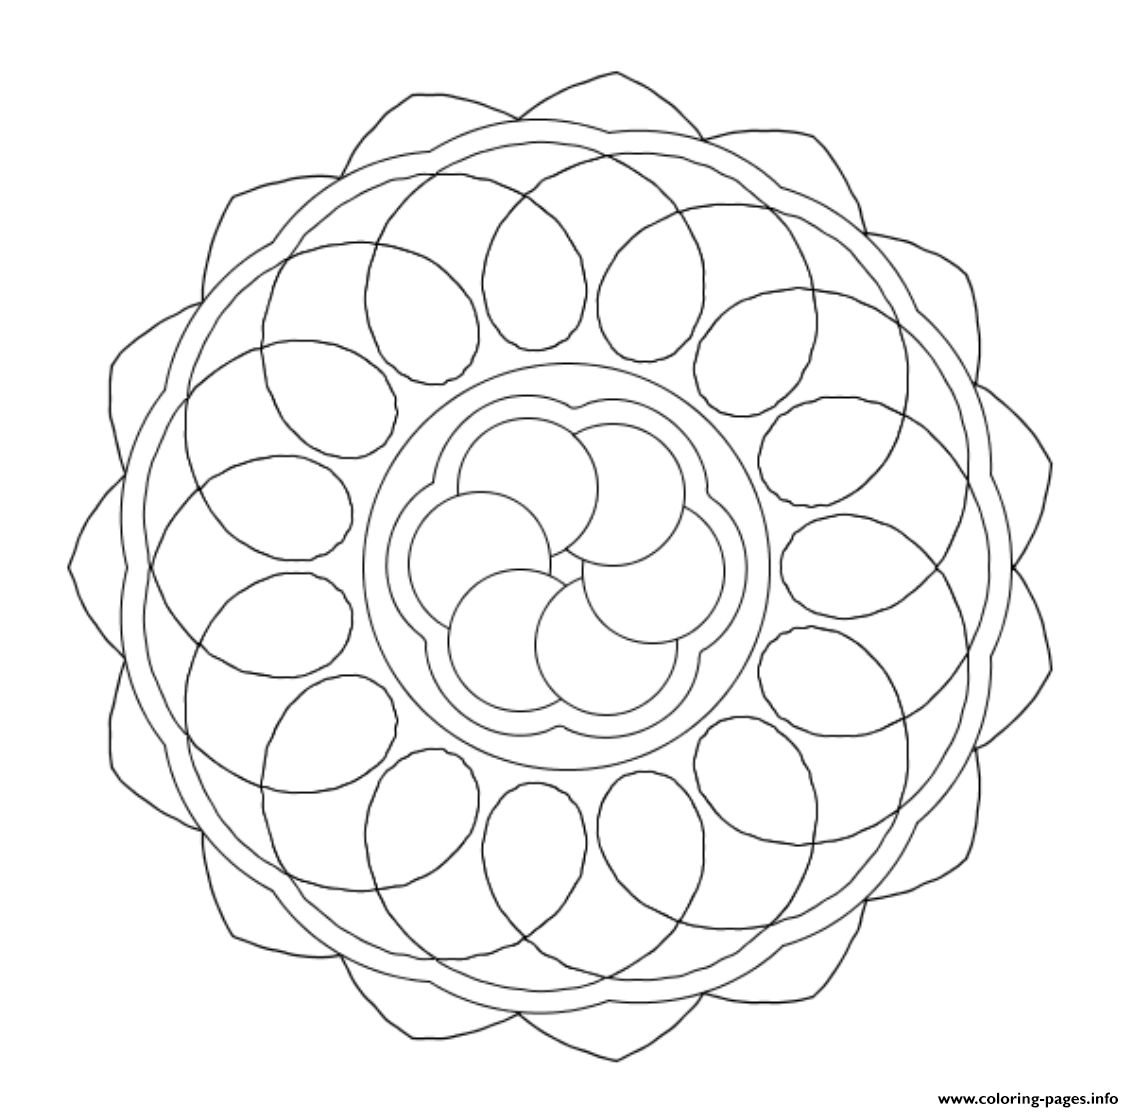 Easy Mandala Sc4f9 coloring pages